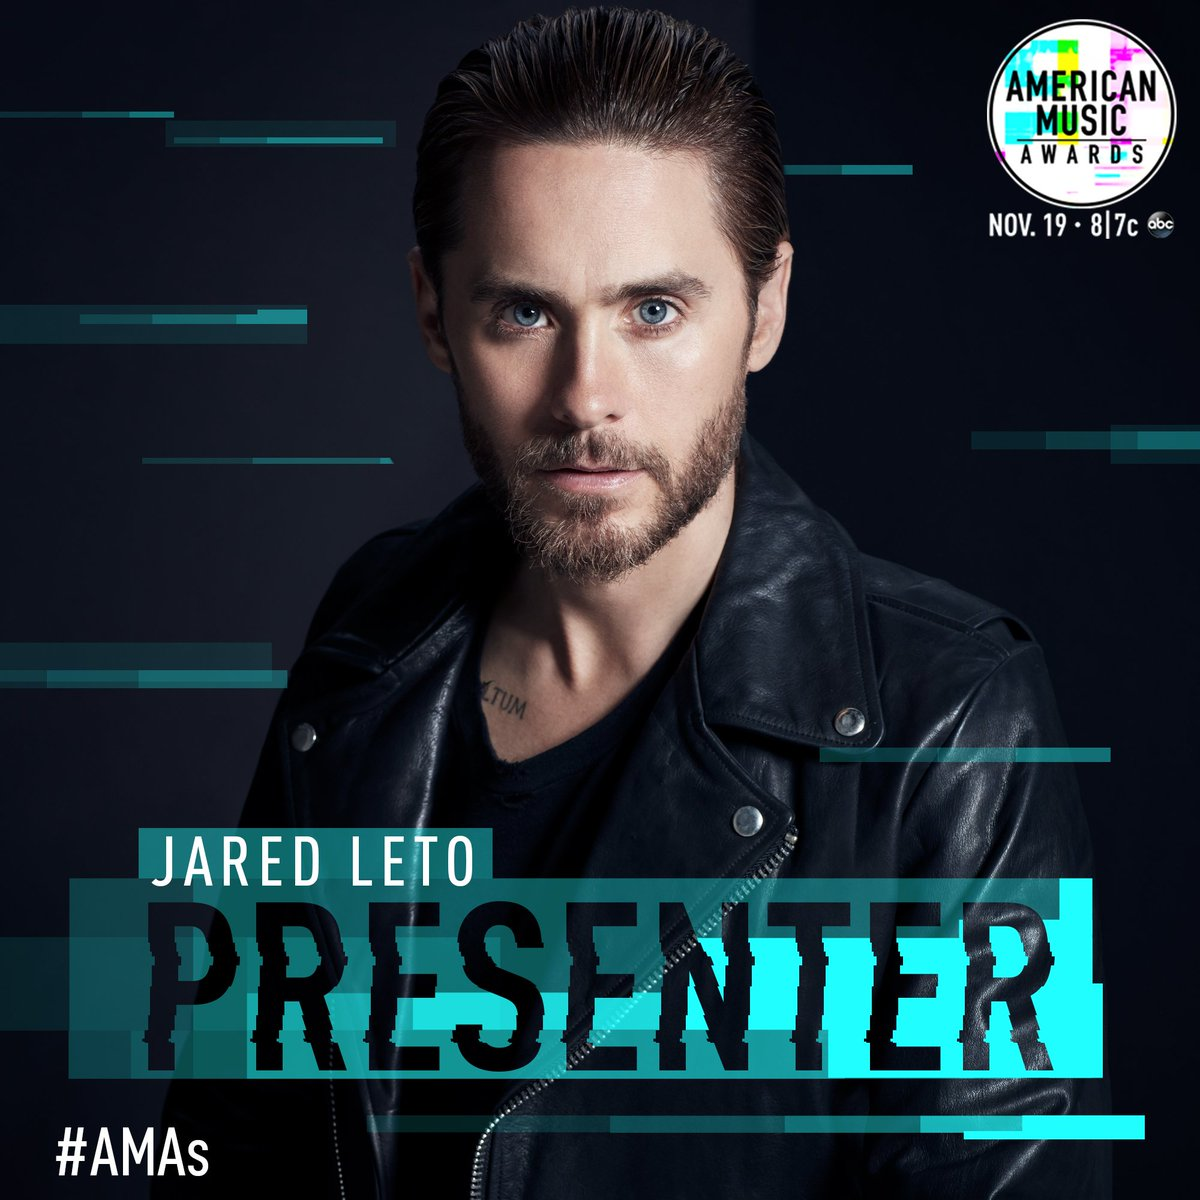 Presenting at this year's @AMAs - tune in LIVE this Sunday at 8/7c on ABC. #AMAs https://t.co/hc1UyB9Nao